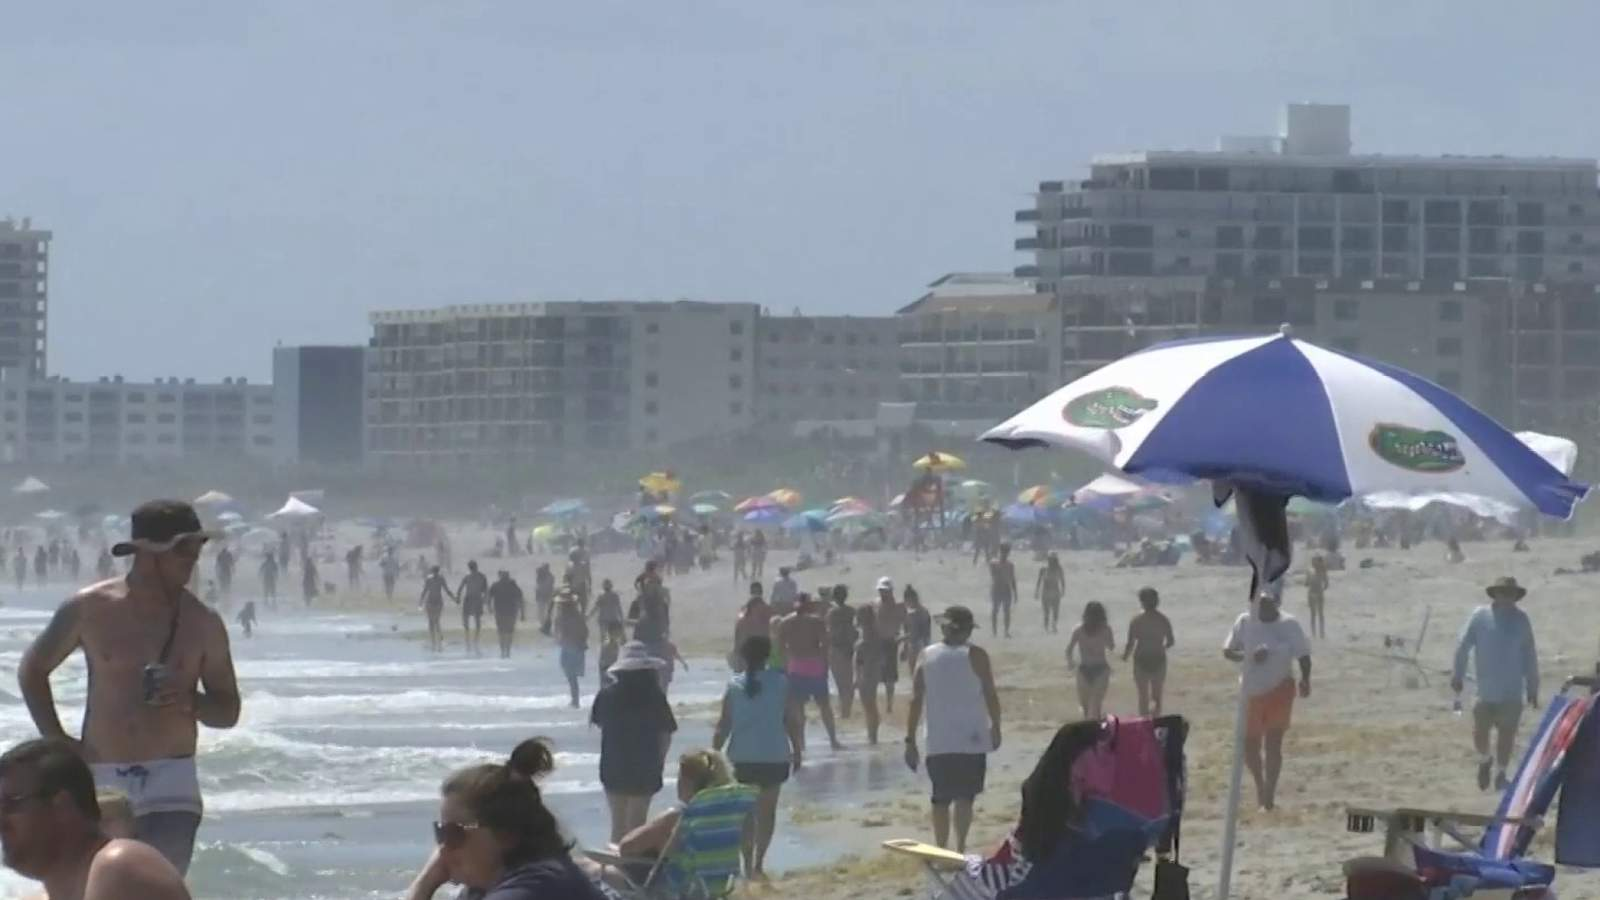 Brevard Trash Collection After Christmas 2020 13,000 pounds of trash left on Cocoa Beach after it reopens